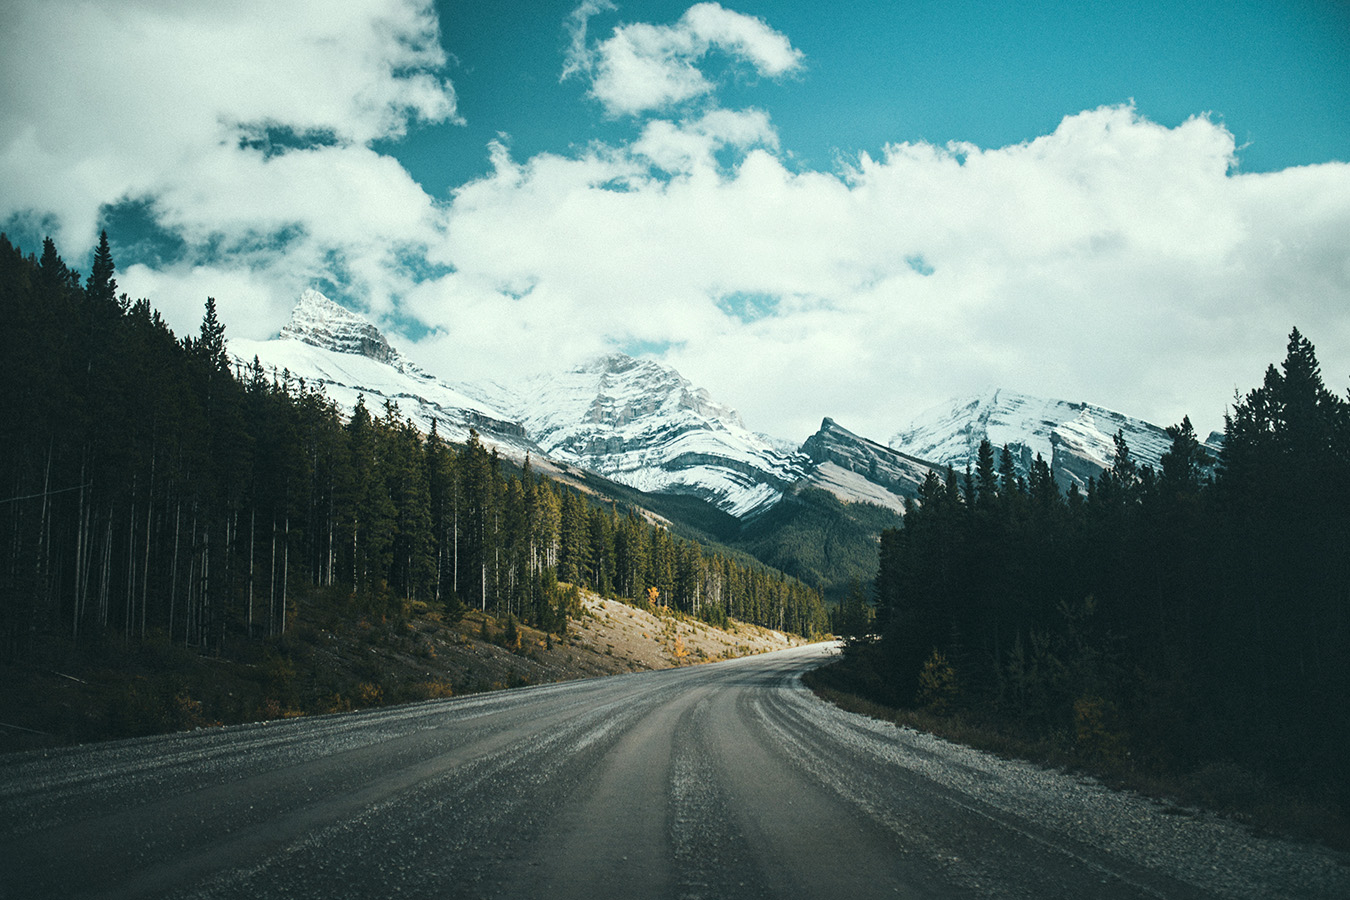 Kananaskis Roadtrip